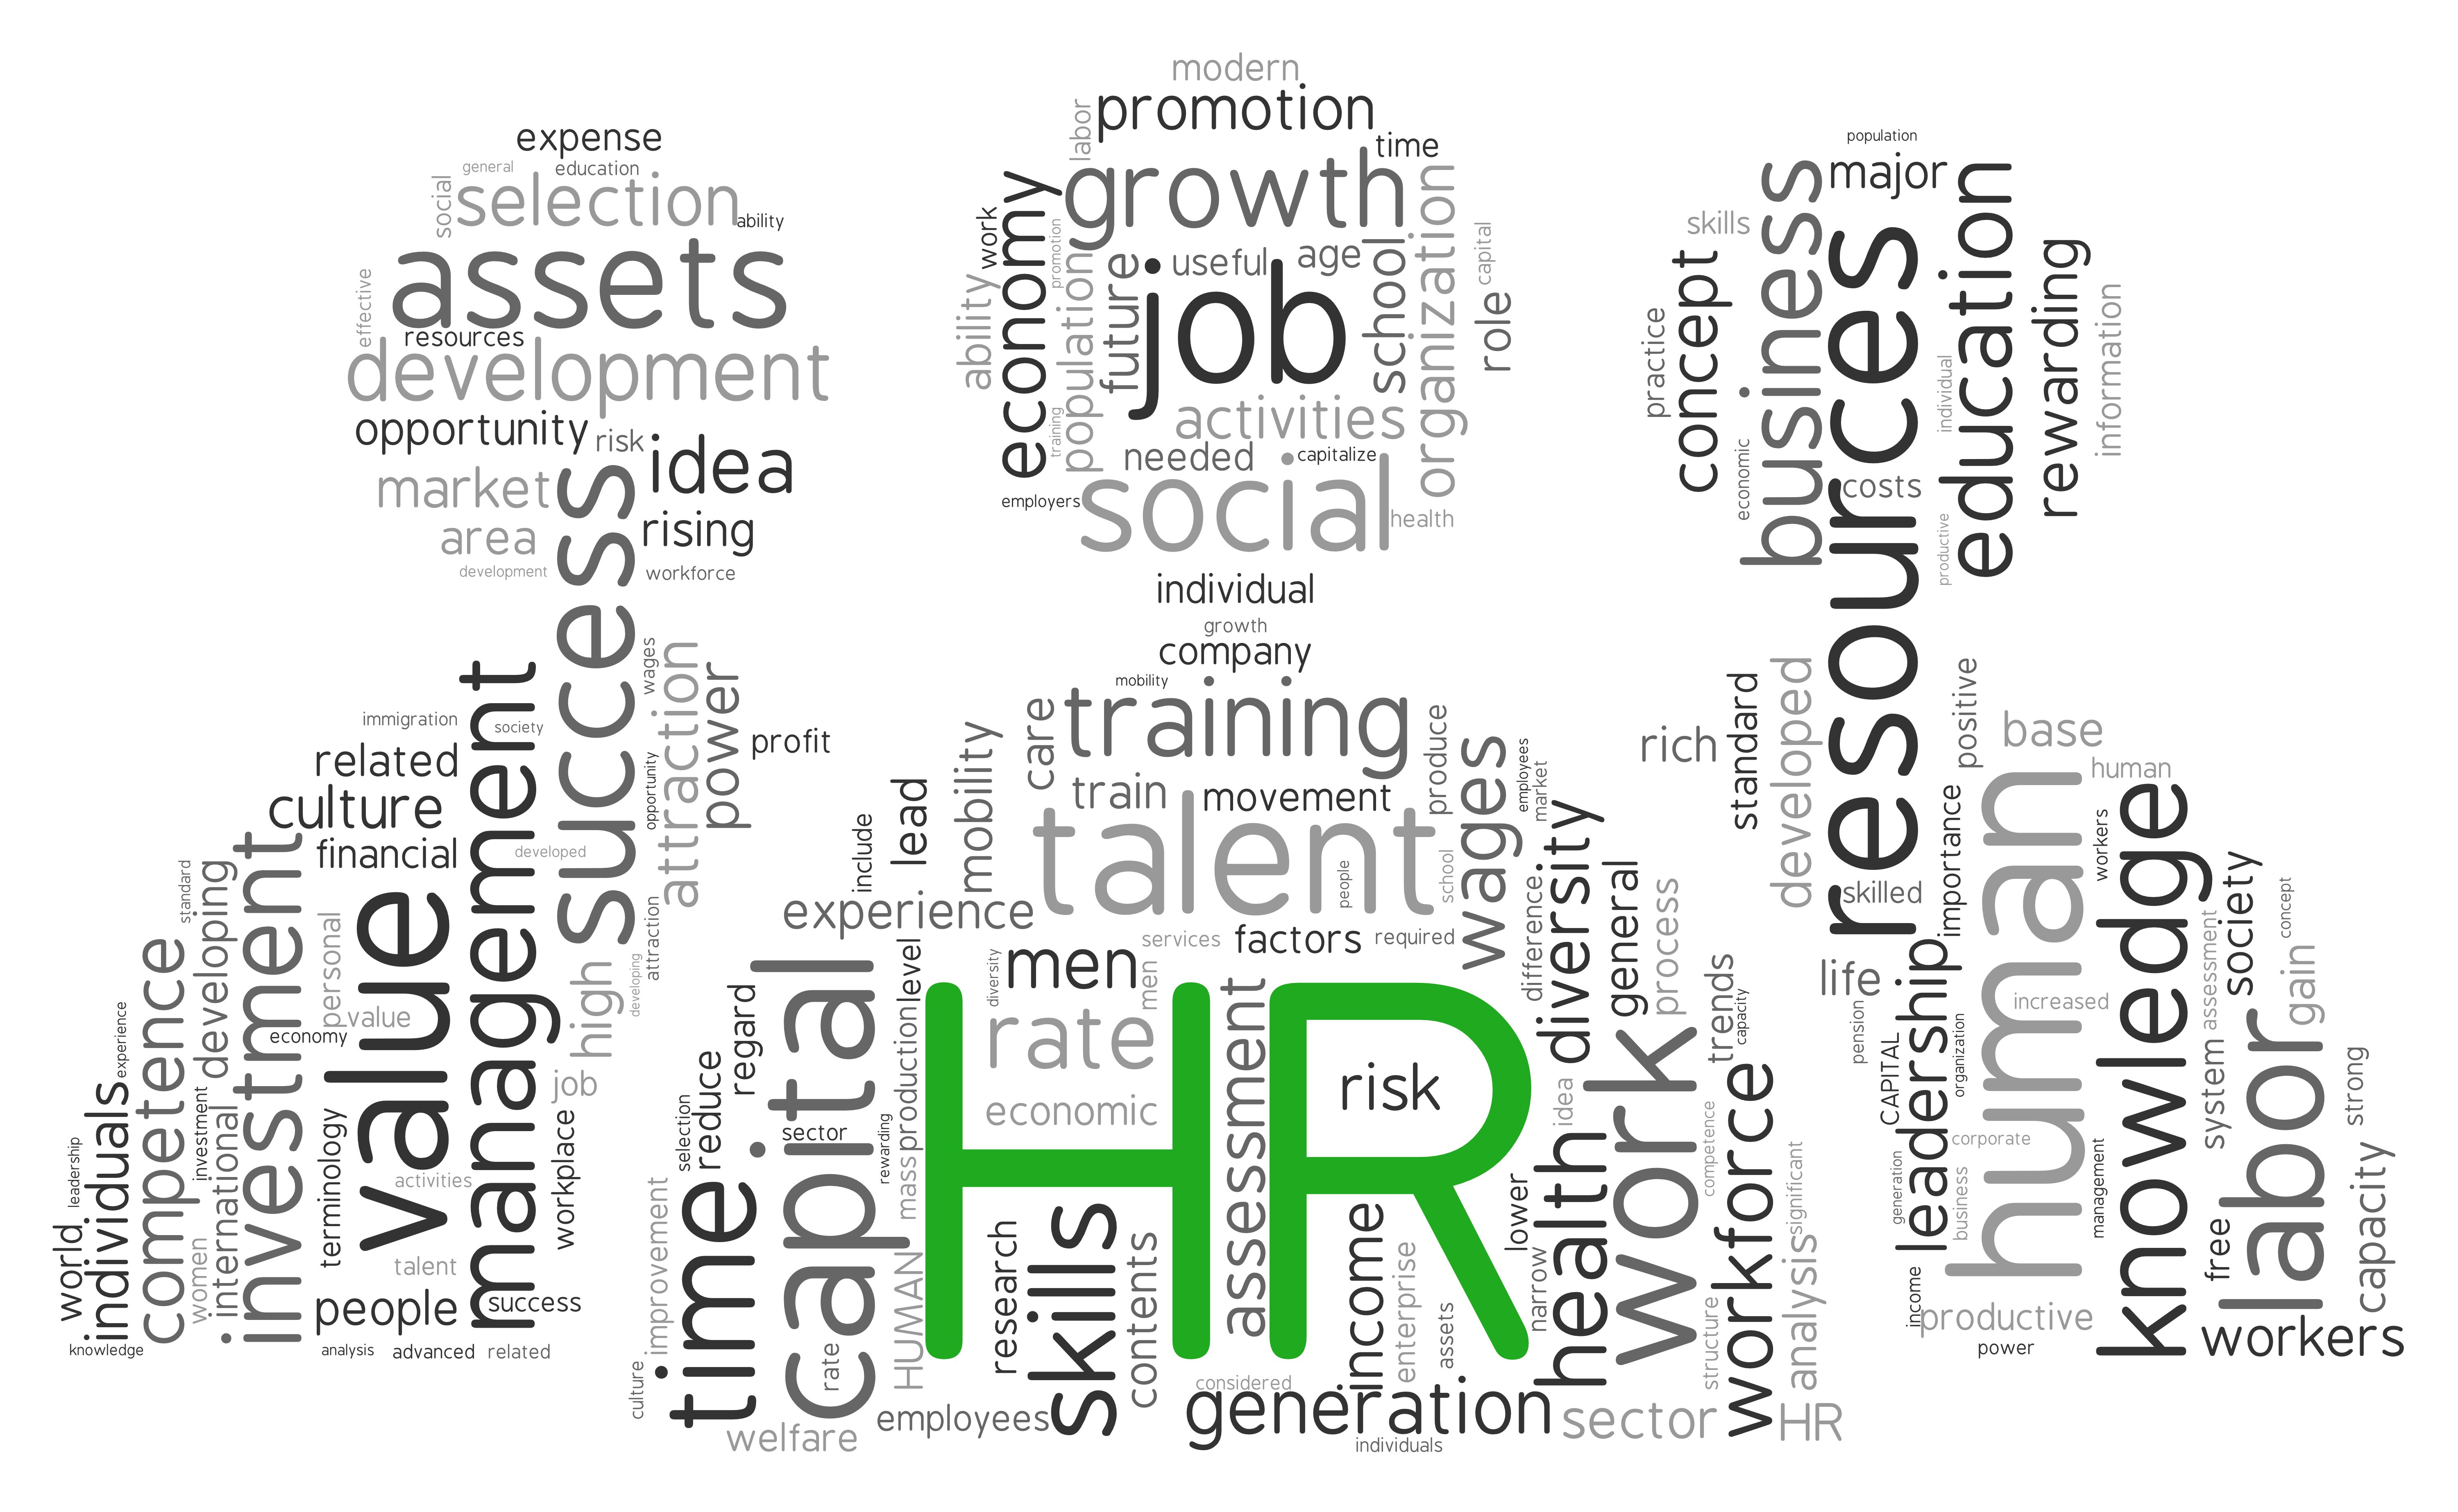 Don't think you need HR – think again